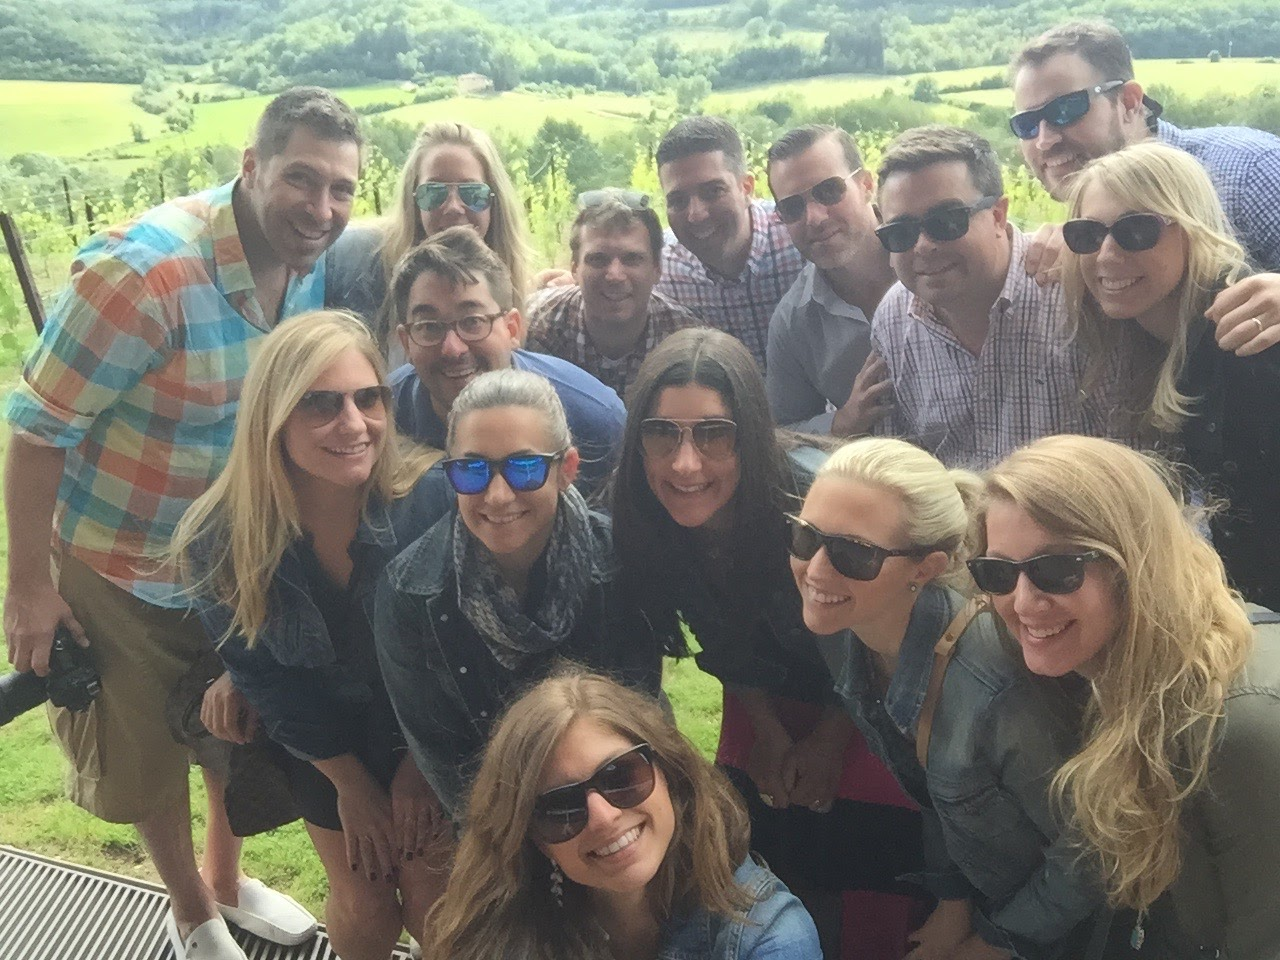 The crew at Antinori Winery